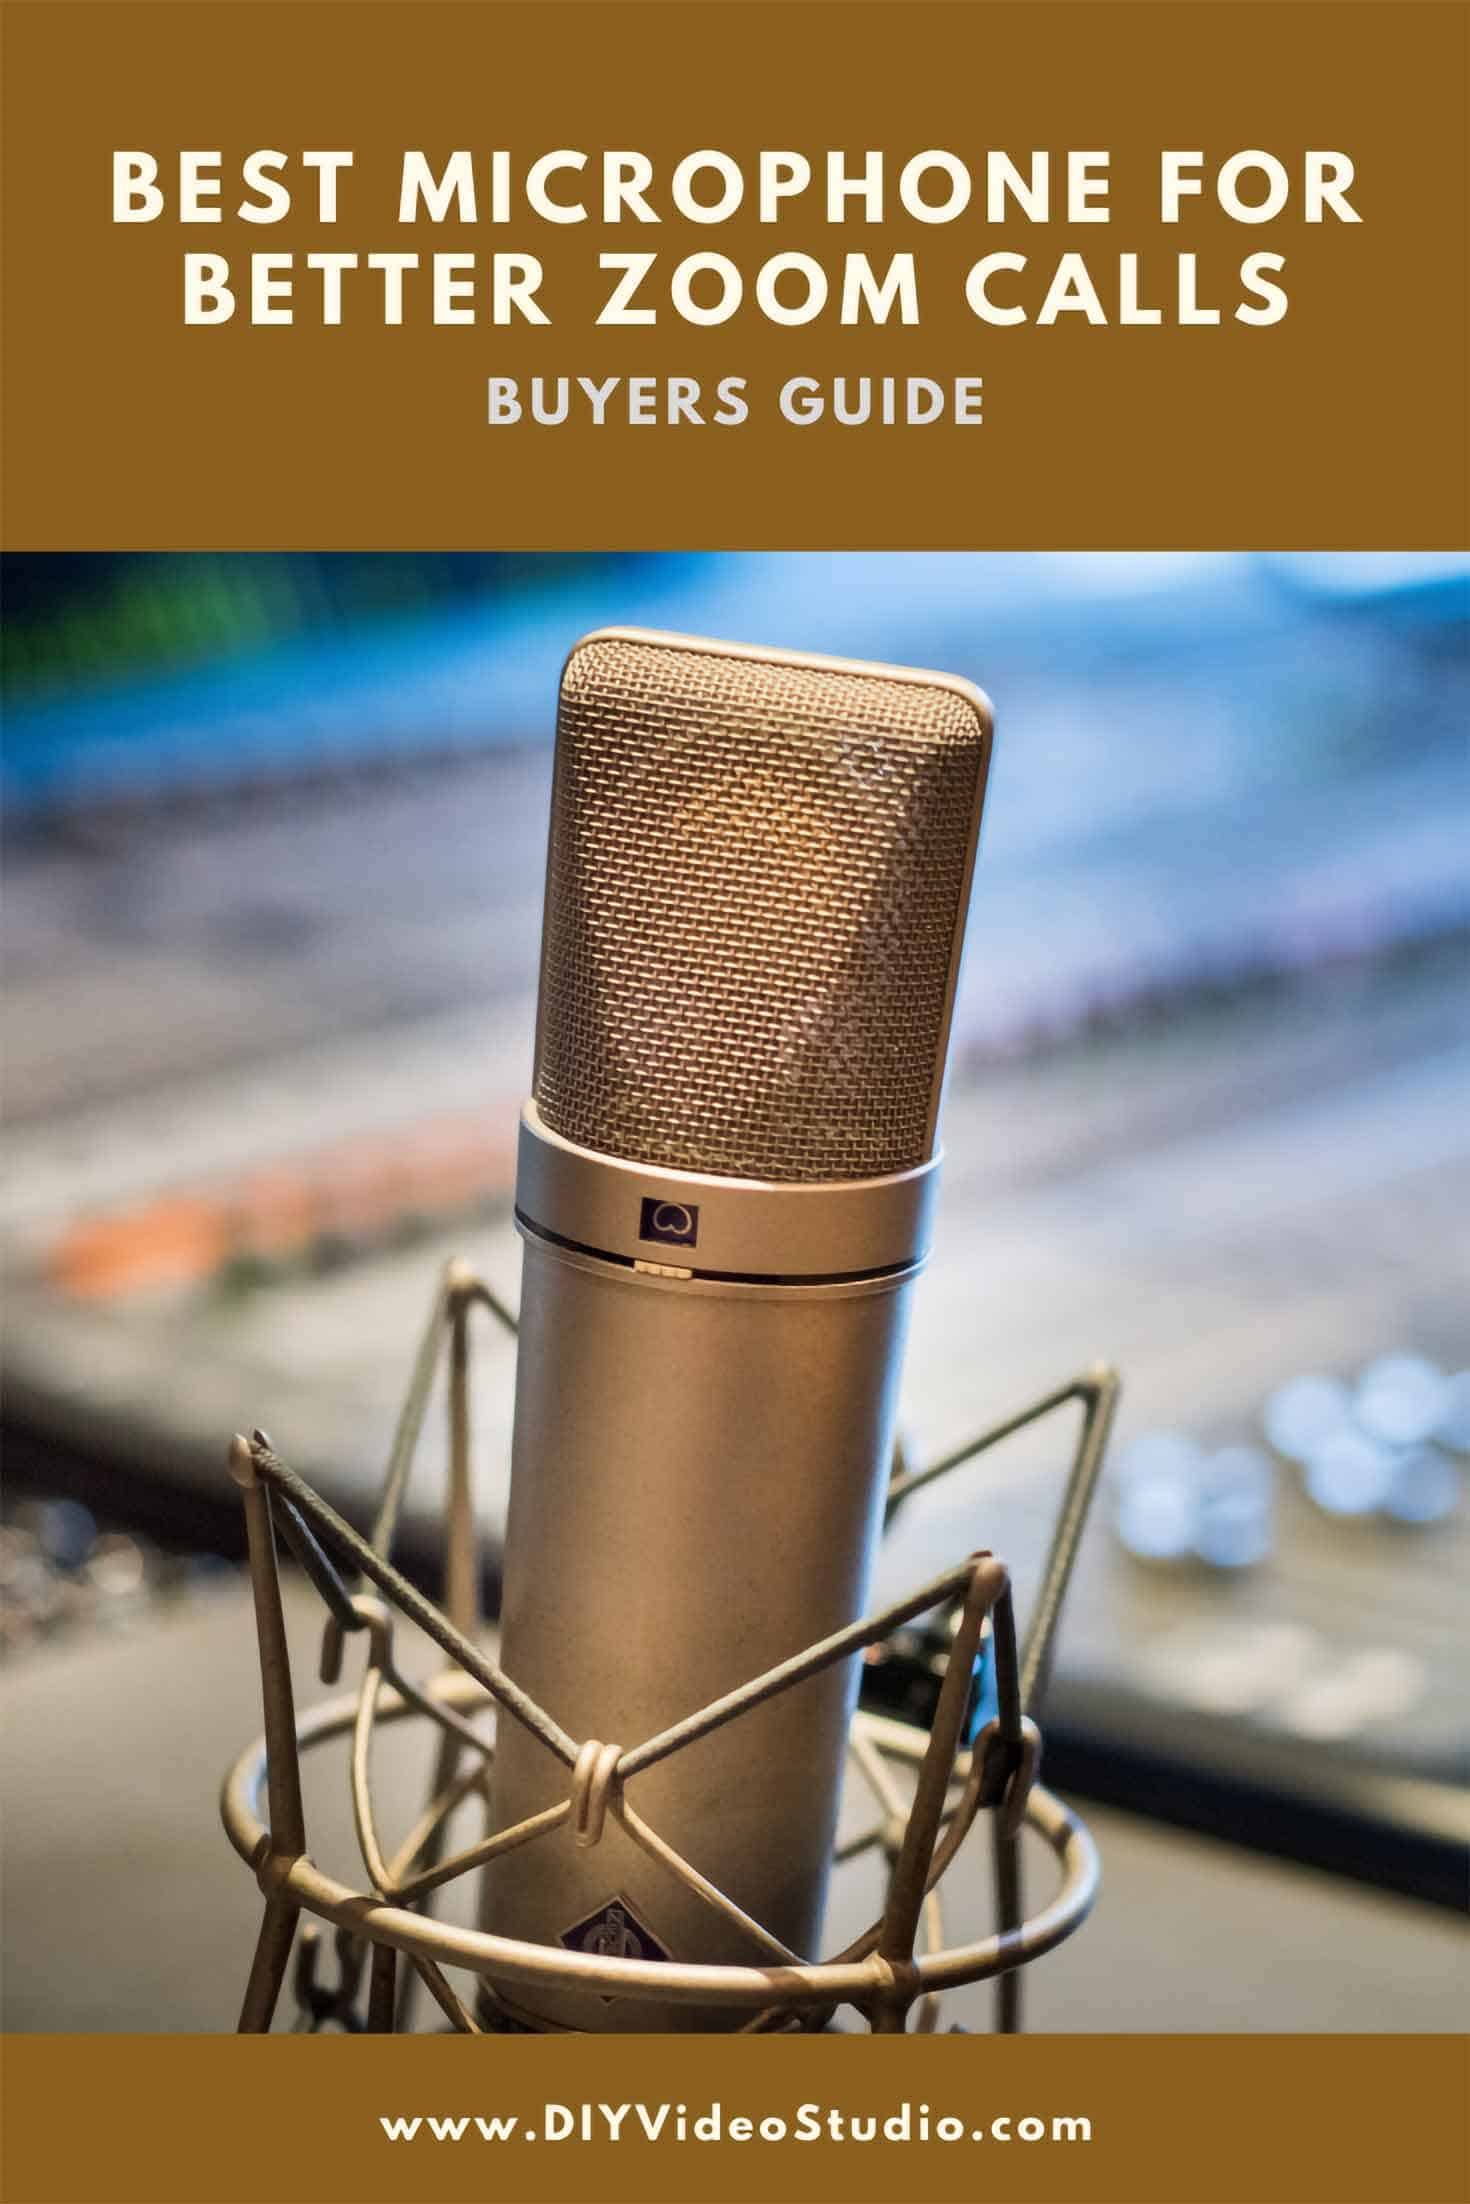 Best microphone for better Zoom calls - Pinterest Graphic